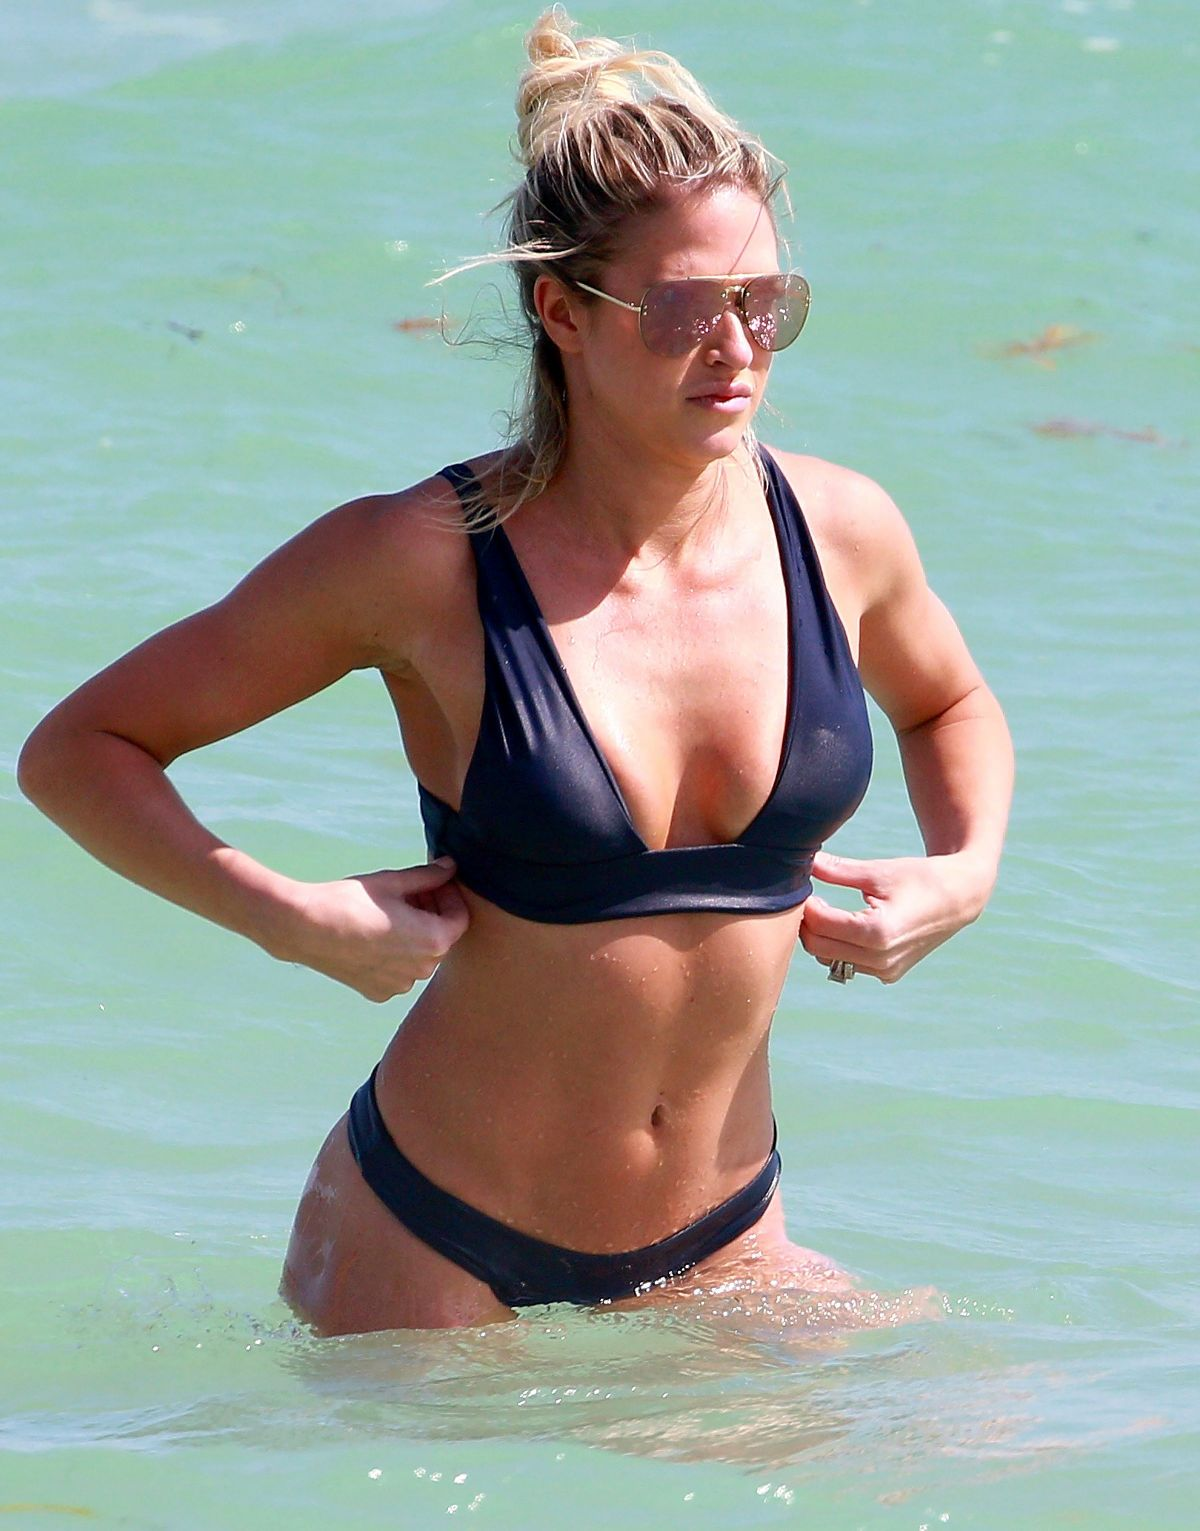 BARBIE BLANK in Bikini at a Beach in Miami 02/27/2017